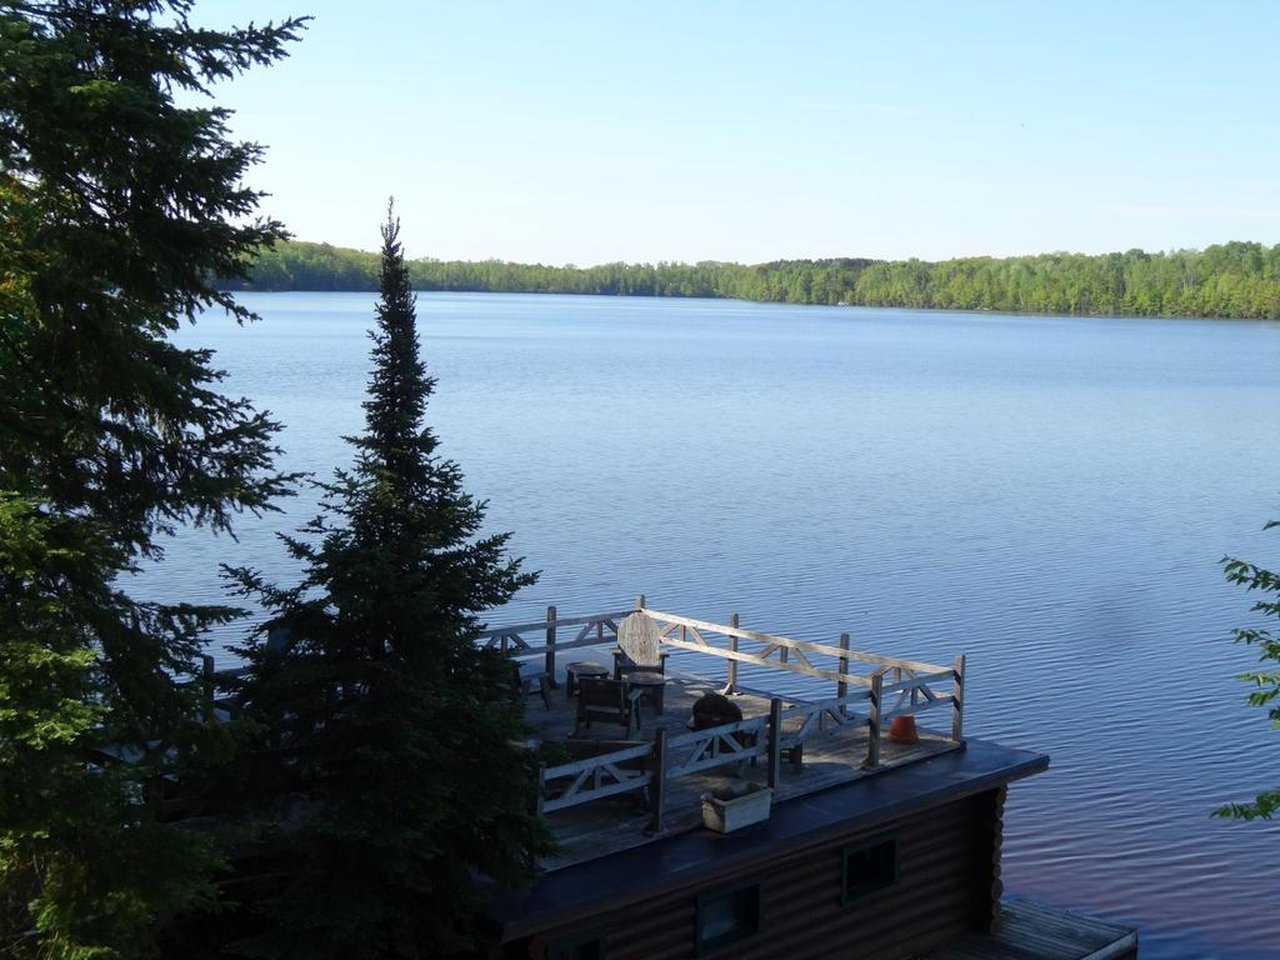 dazzling lake views from the boathouse rooftop deck